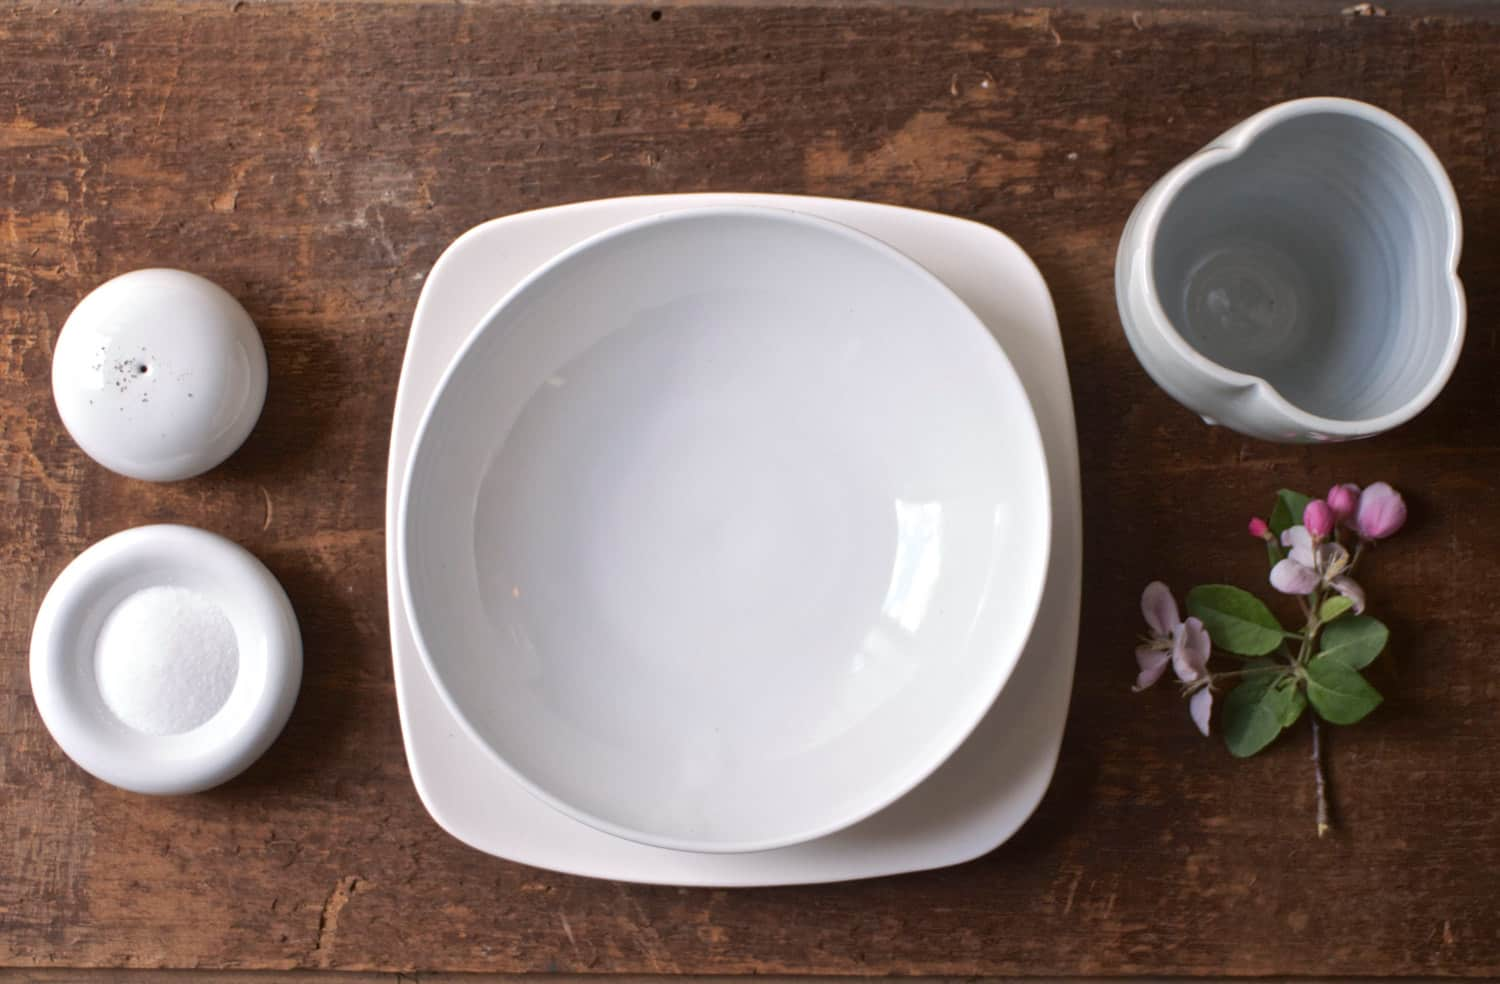 Center Ceramics: Gorgeous Handmade Ceramic Wares for the Table: gallery image 8